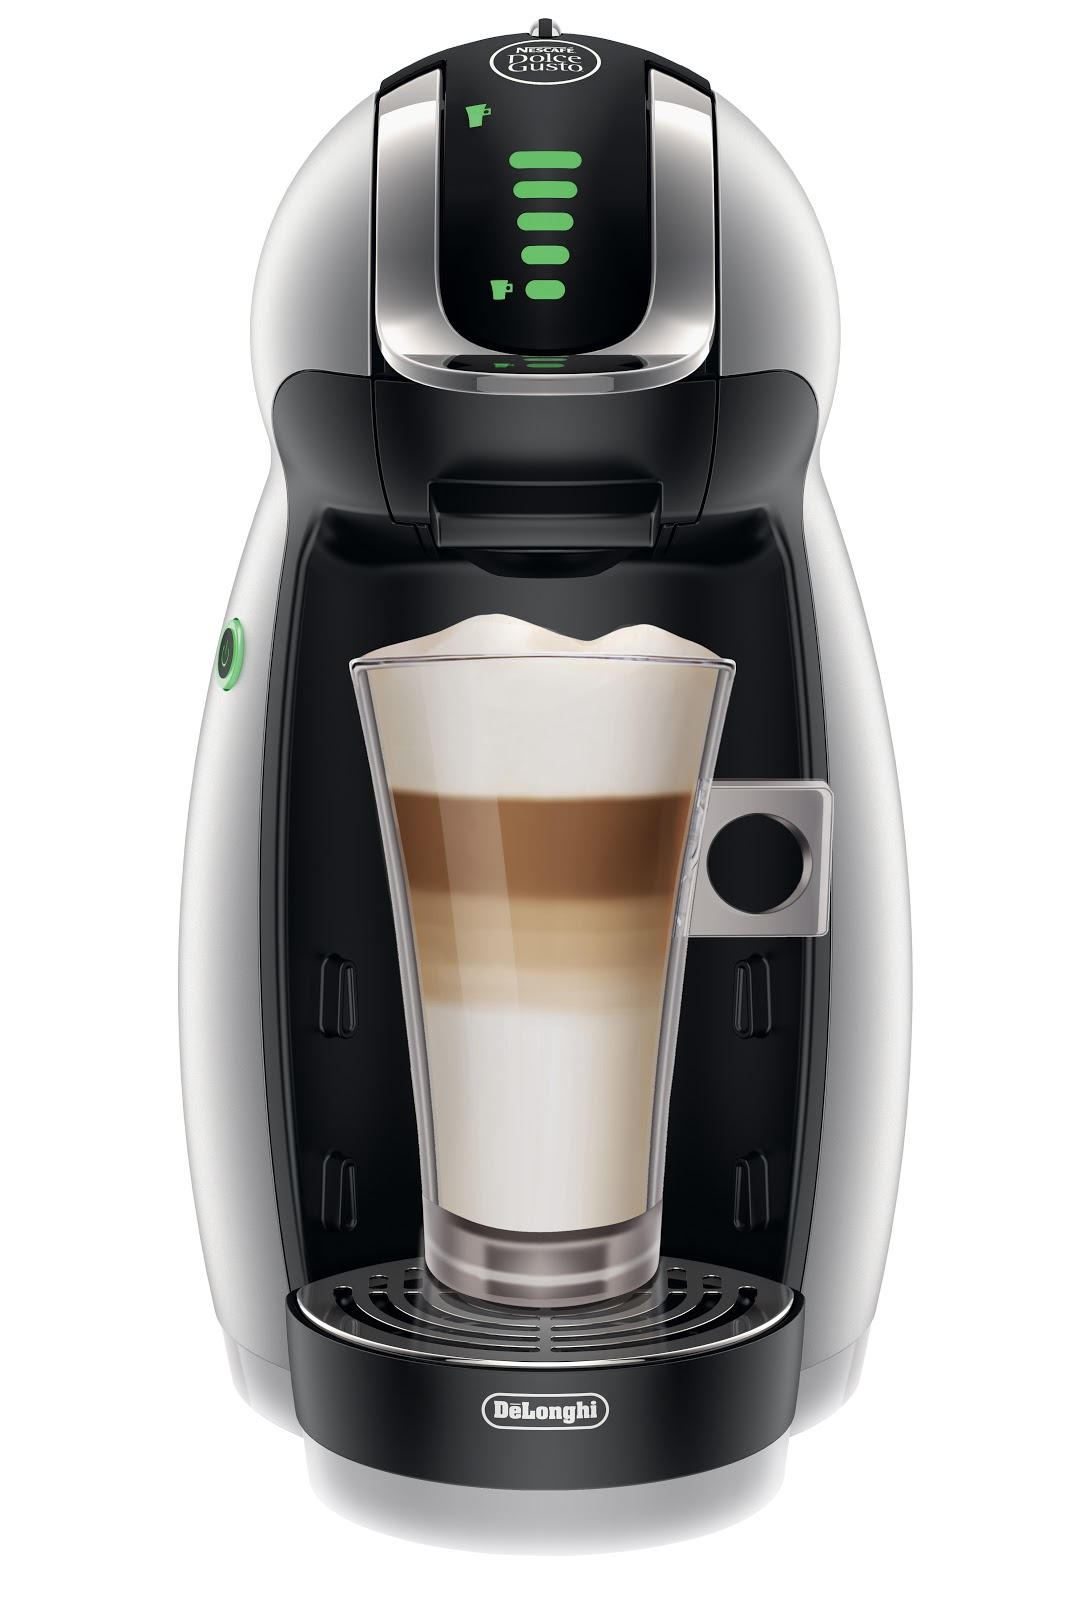 nescaf dolce gusto genio coffee machine. Black Bedroom Furniture Sets. Home Design Ideas